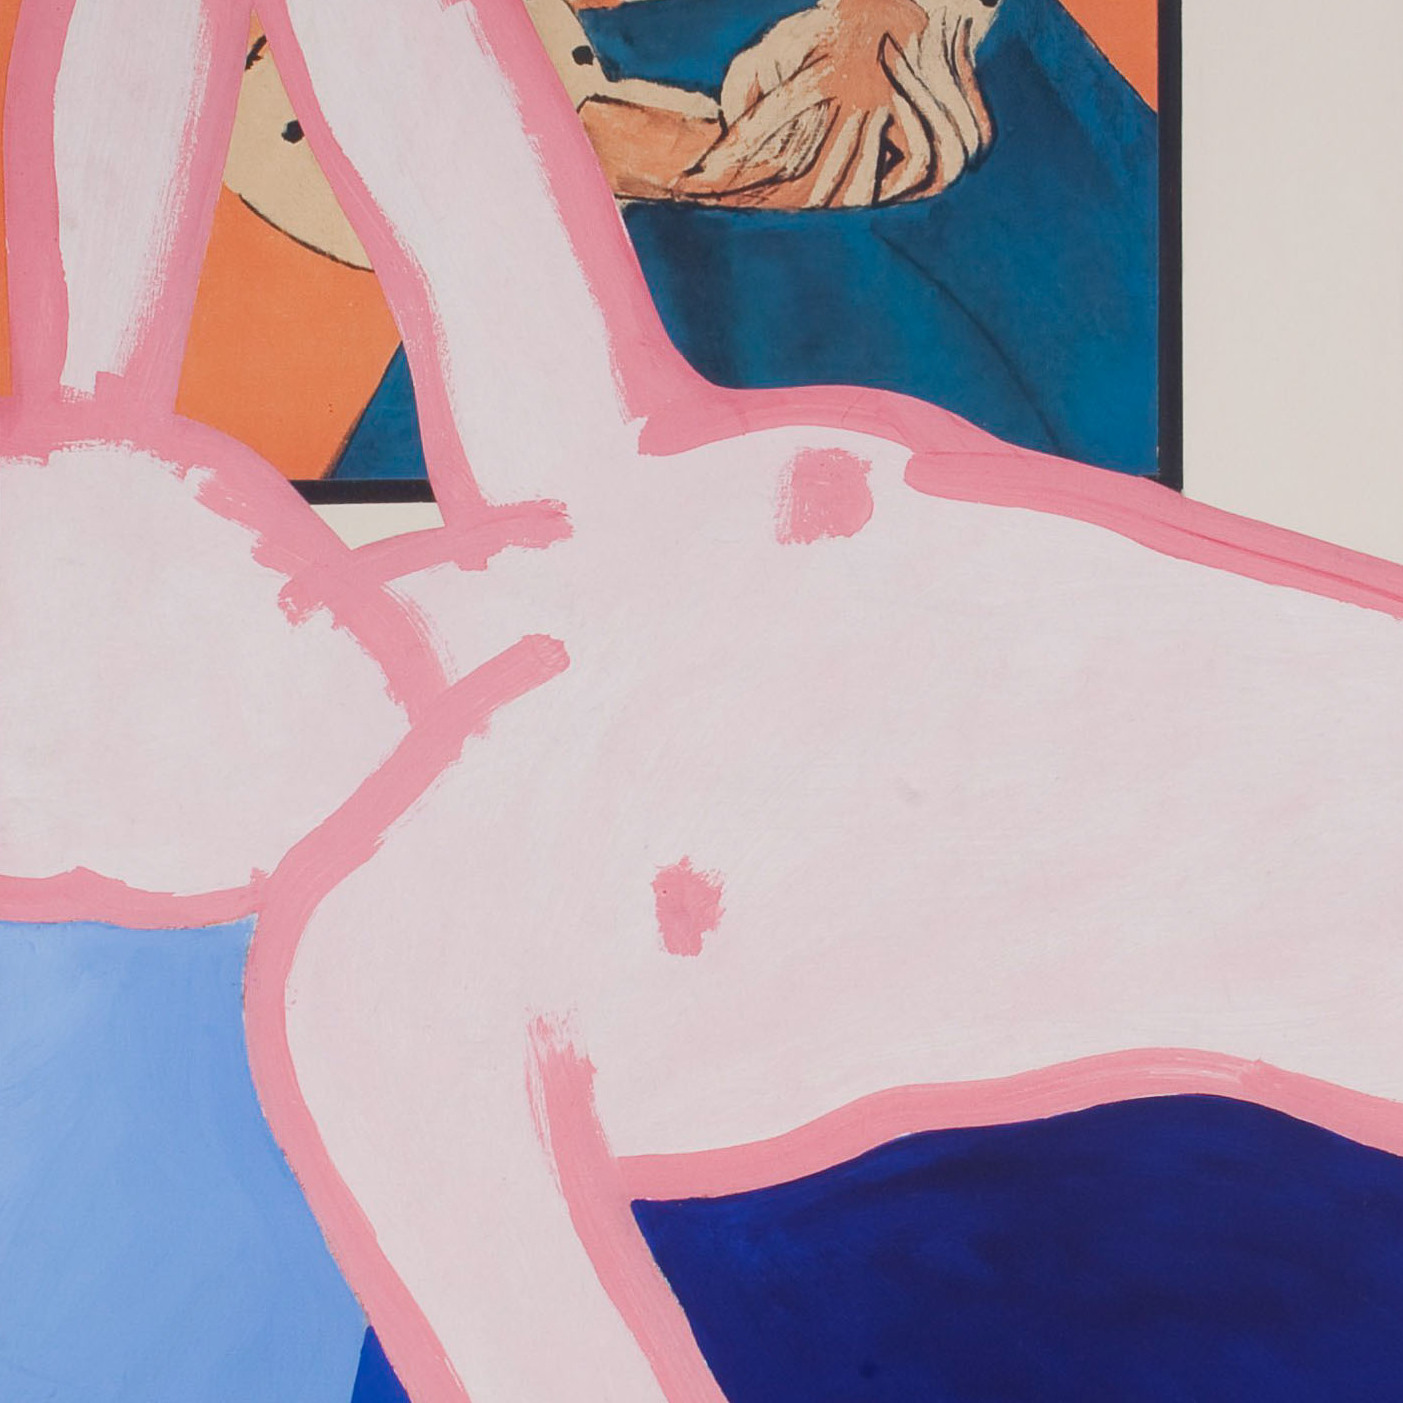 Nearly 100 years after Edouard Manet painted his scandalous 1863 Olympia, Tom Wesselmann created The Great American Nude #26.